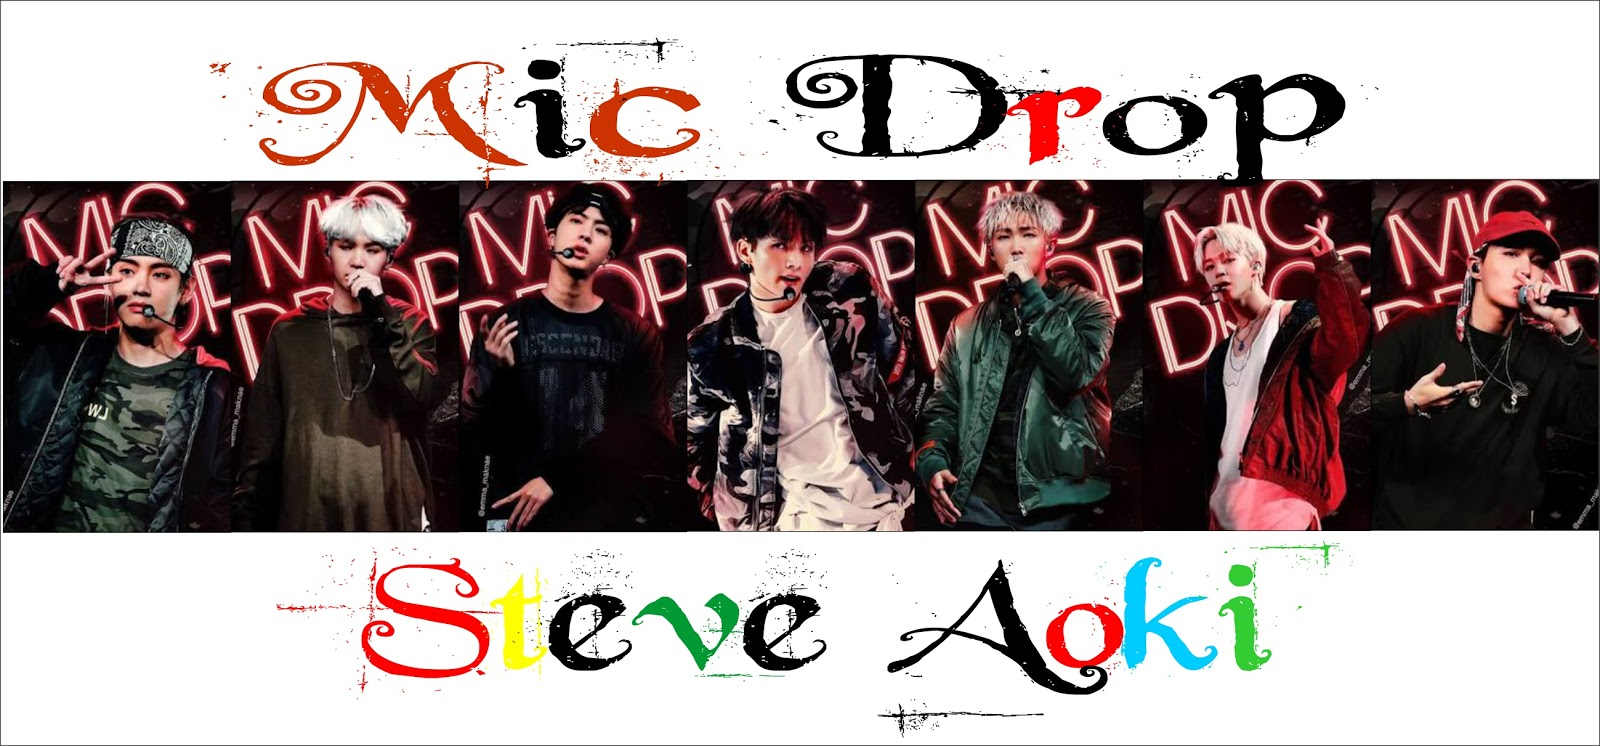 Nadayeo: Lyric MIC drop BTS ft Steve Aoki [ Romanization +